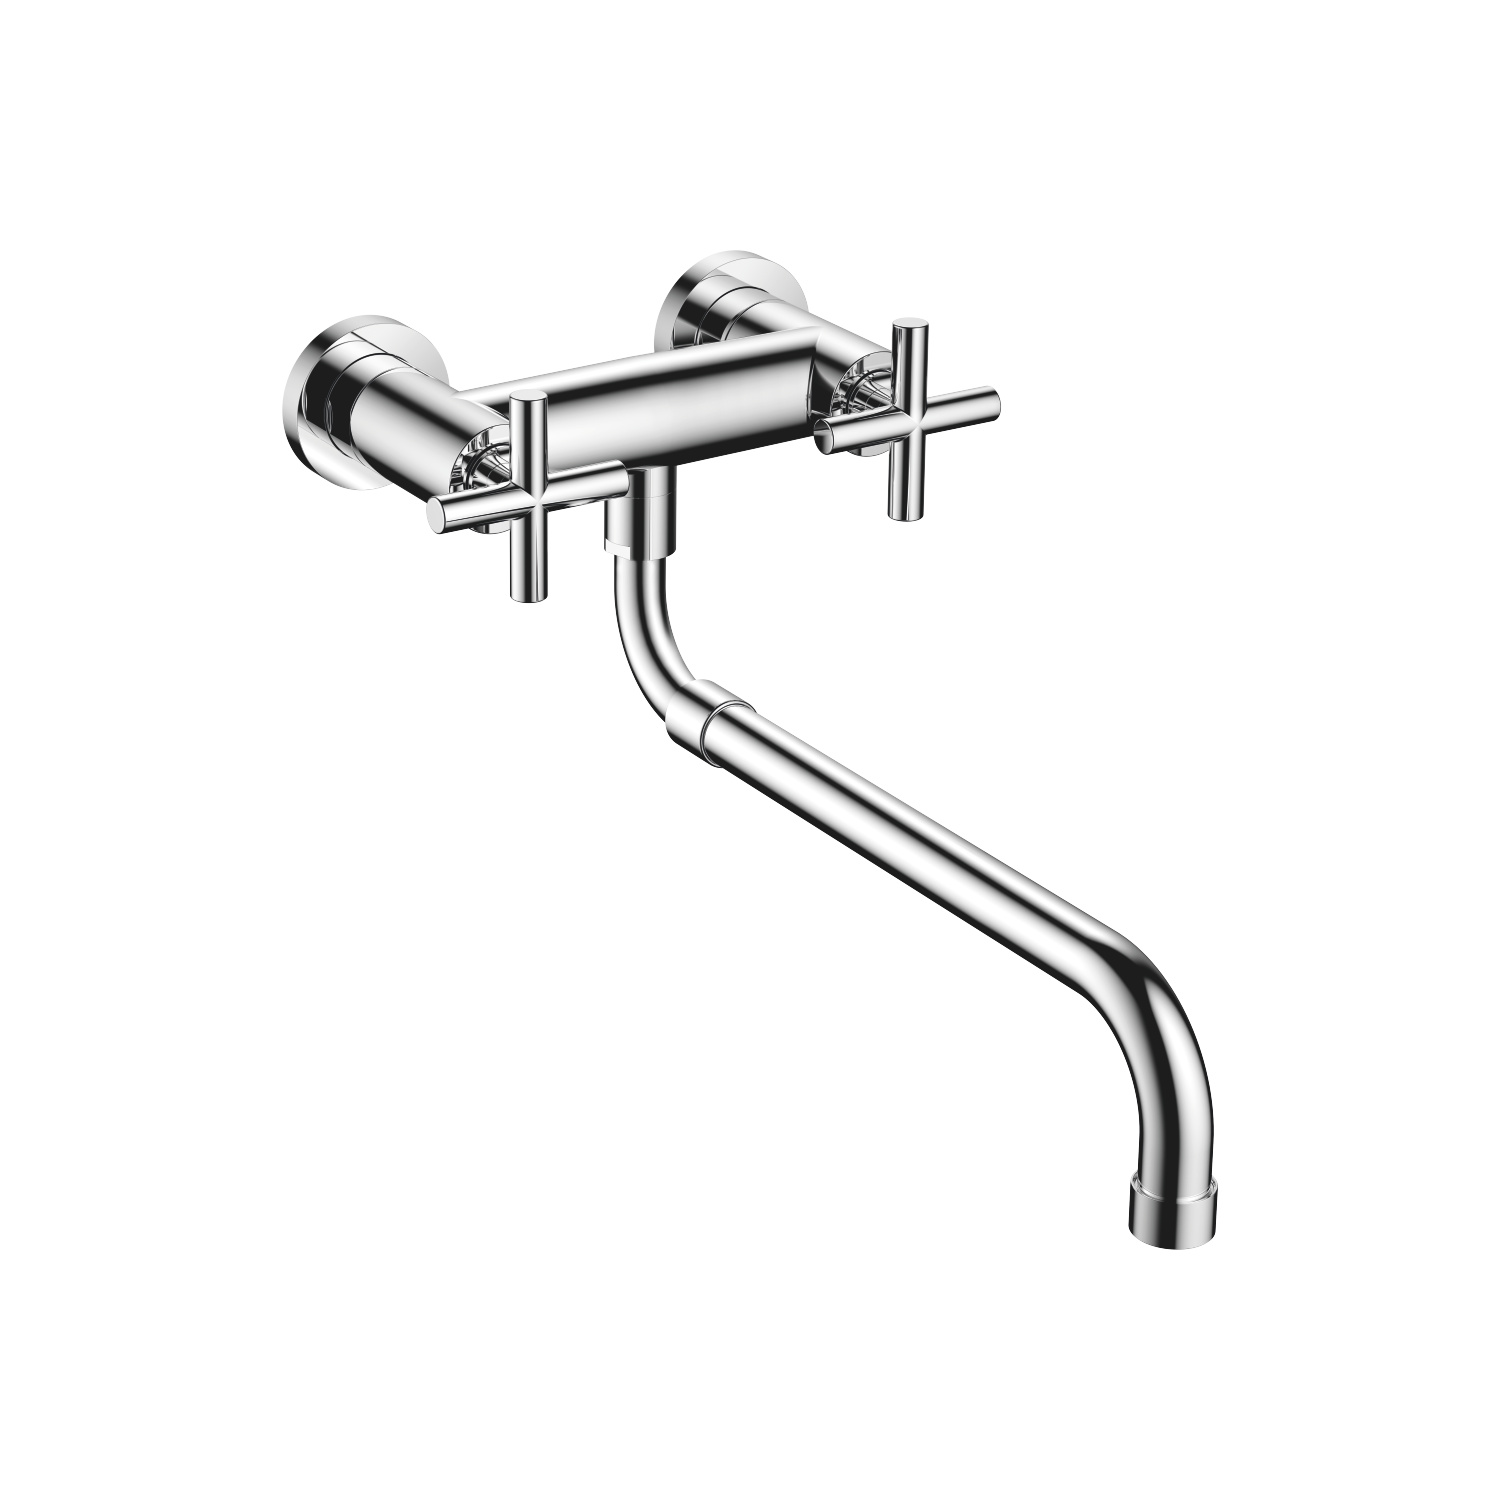 Wall-mounted bridge mixer with extending spout - polished chrome - 31 151 892-00